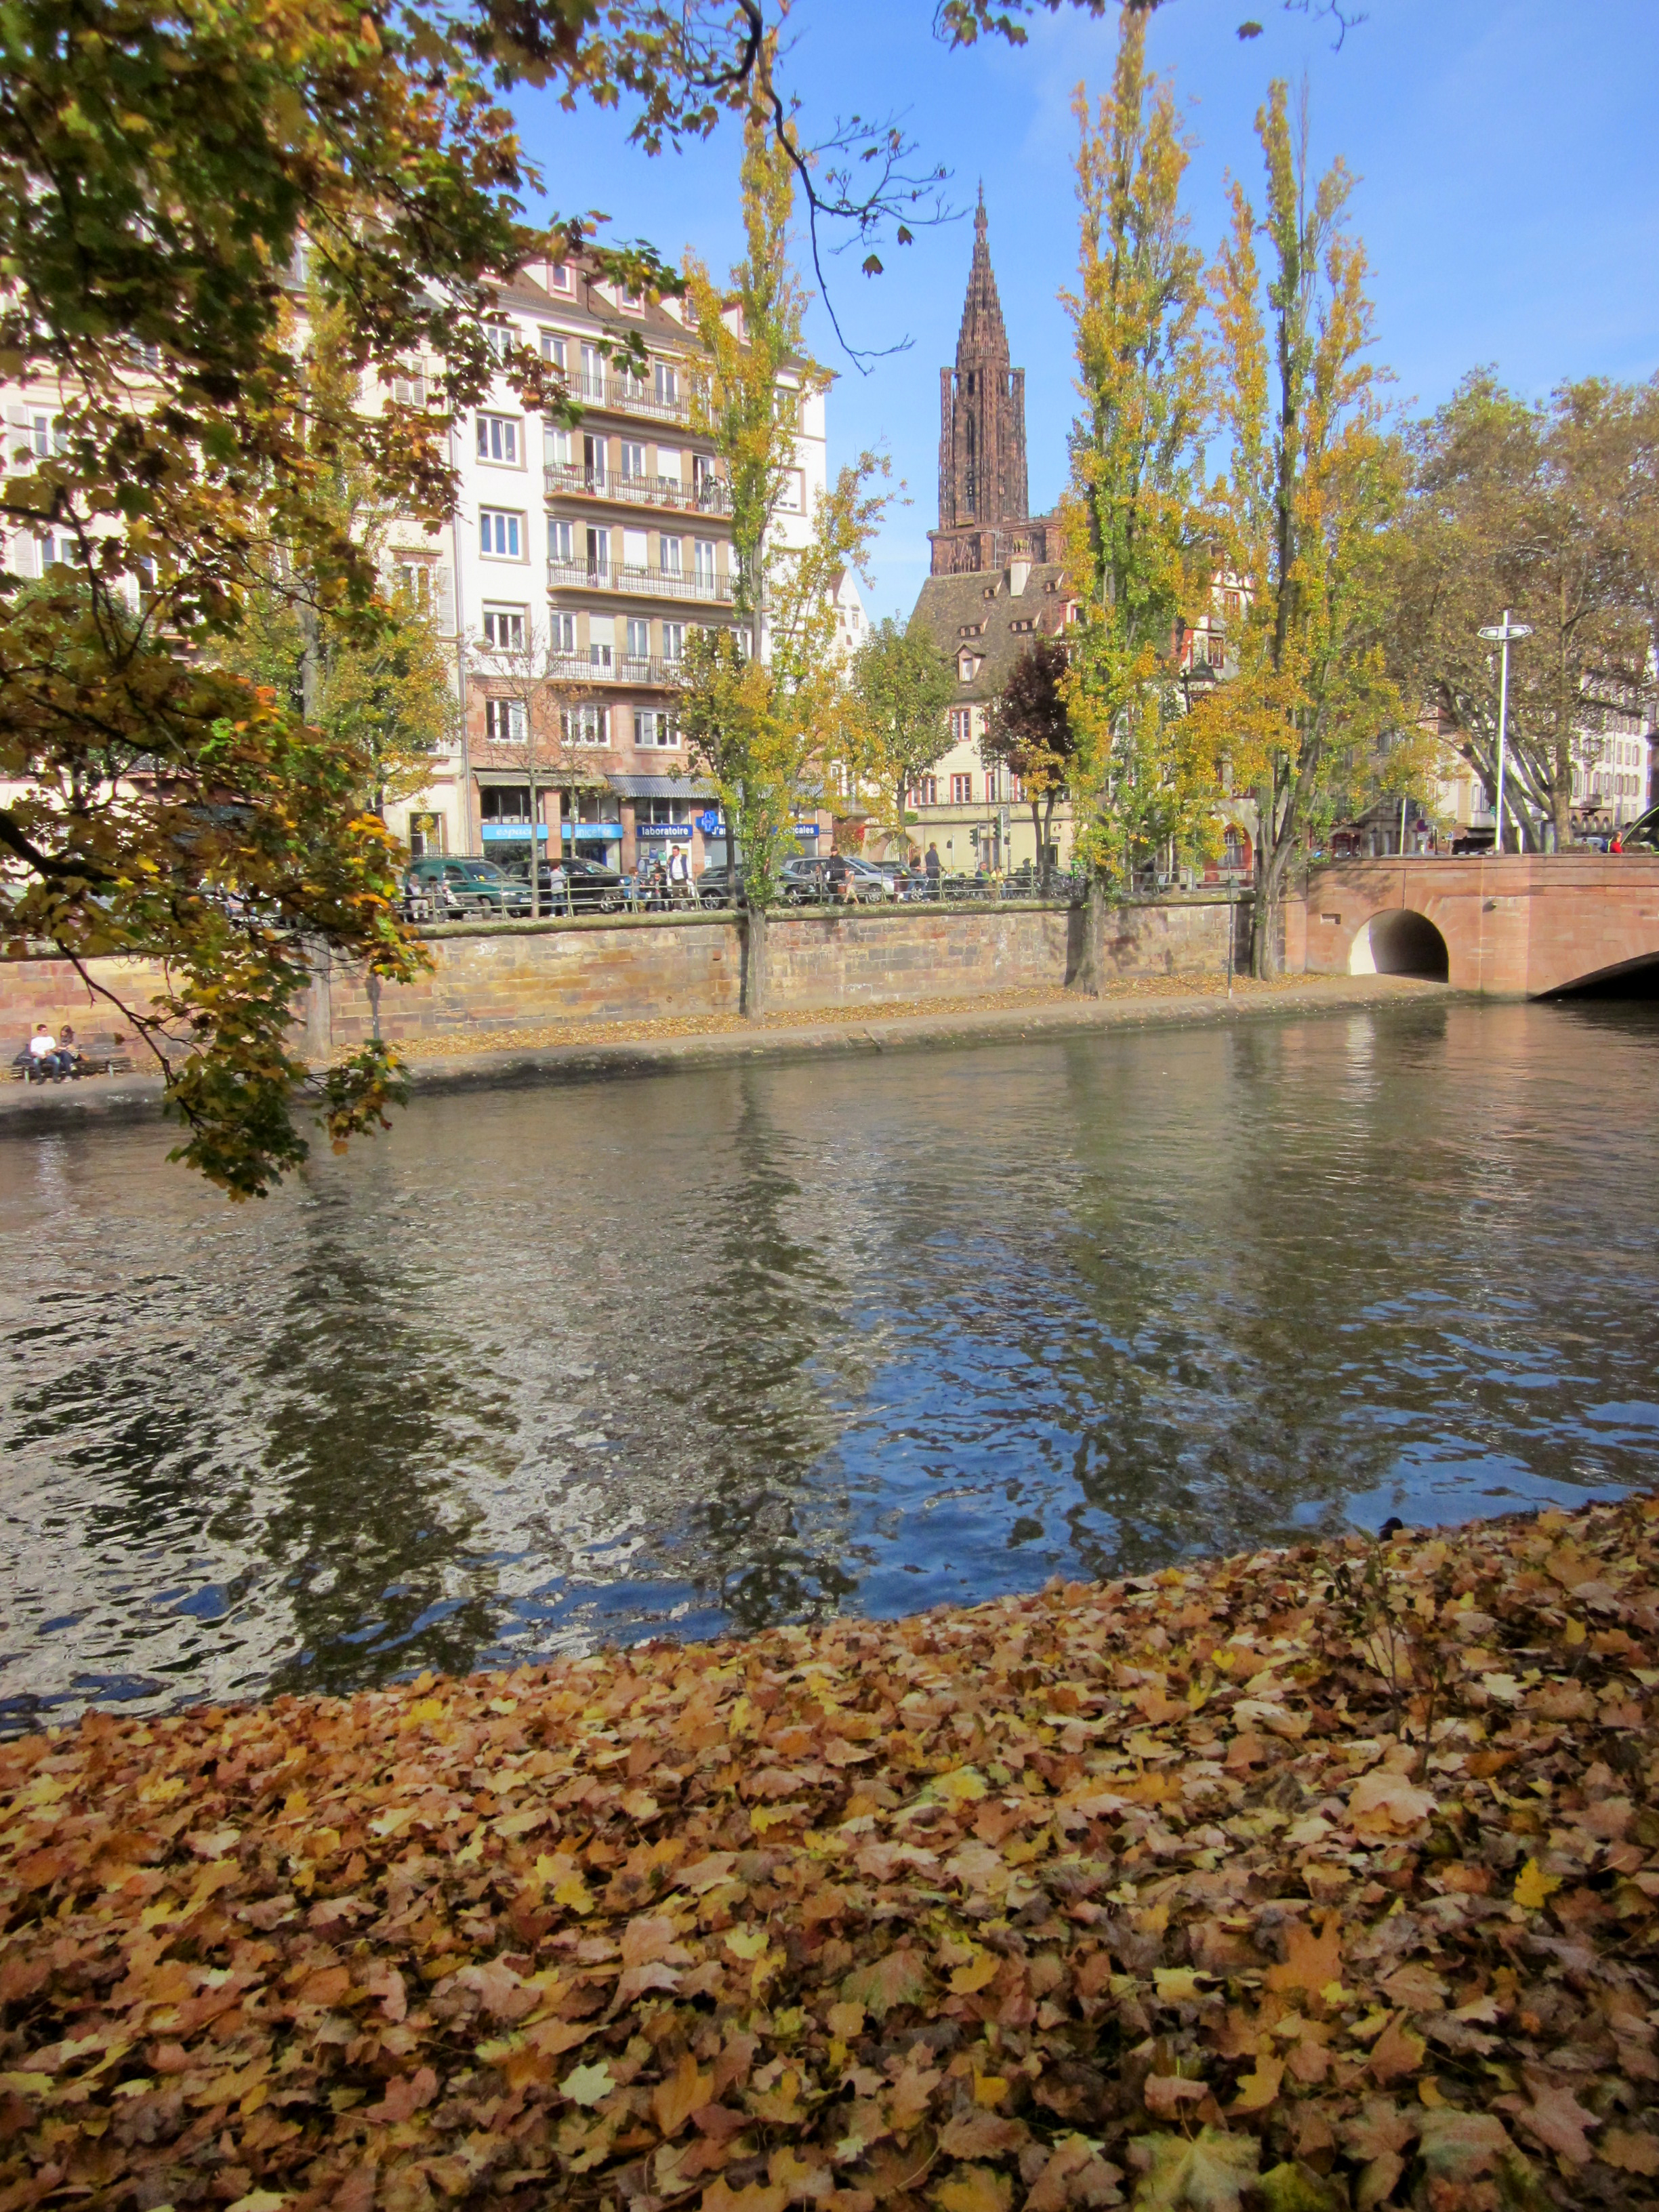 Juliana Johnson - Autumn in France: Alsace - www.MyFrenchLife.org